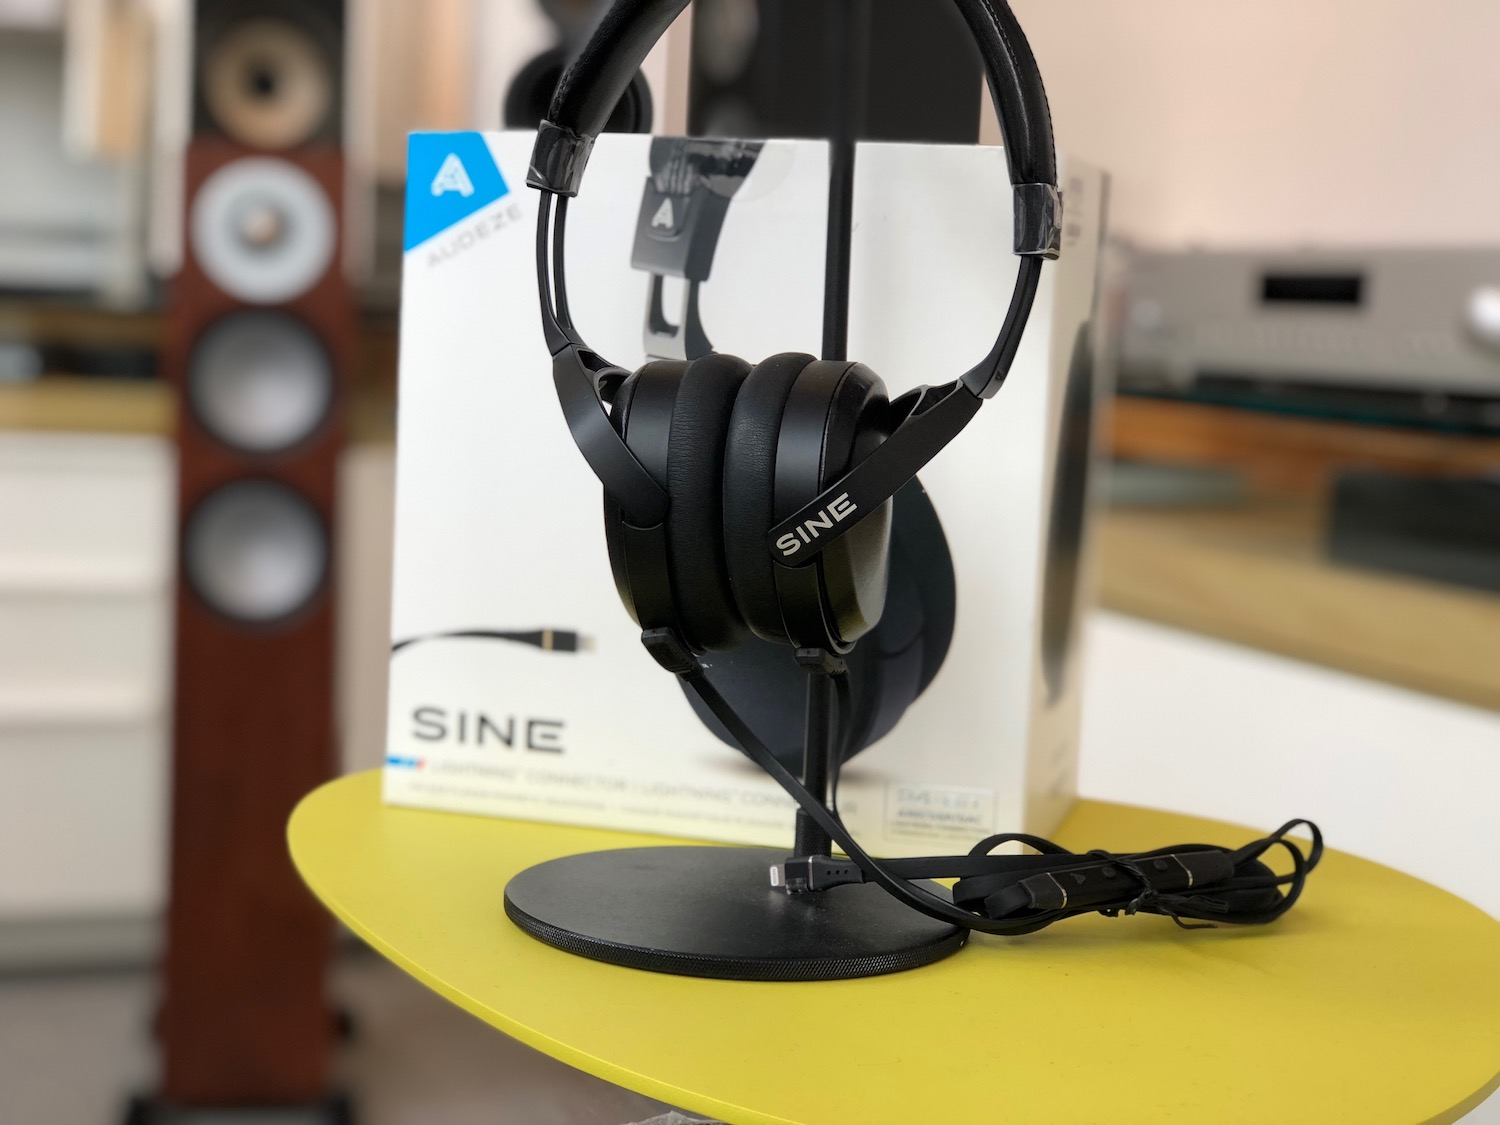 Audeze SINE - hand built in California. Compare at $799. We have them on sale for $429 with the CIPHER cable with 24-bit DAC built-in.